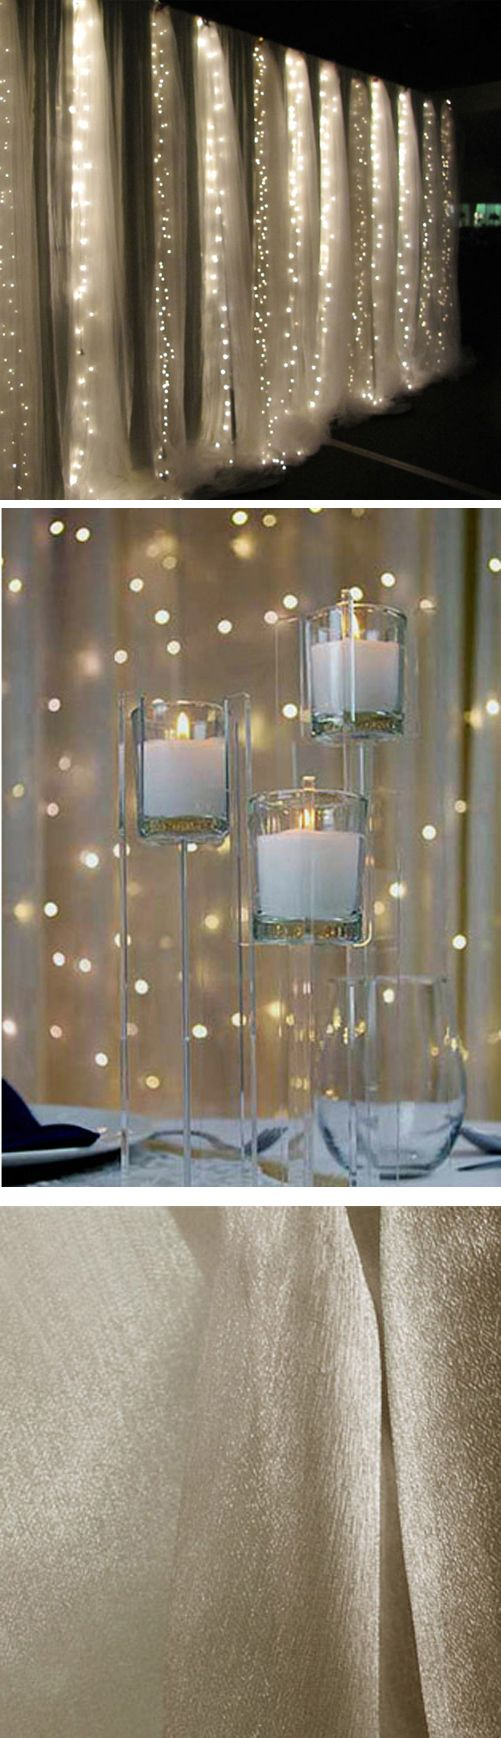 100 Indoor/Dry Outdoor White LED Mini String Lights, 28FT Clear Cord, Multi-flicker Modes ...